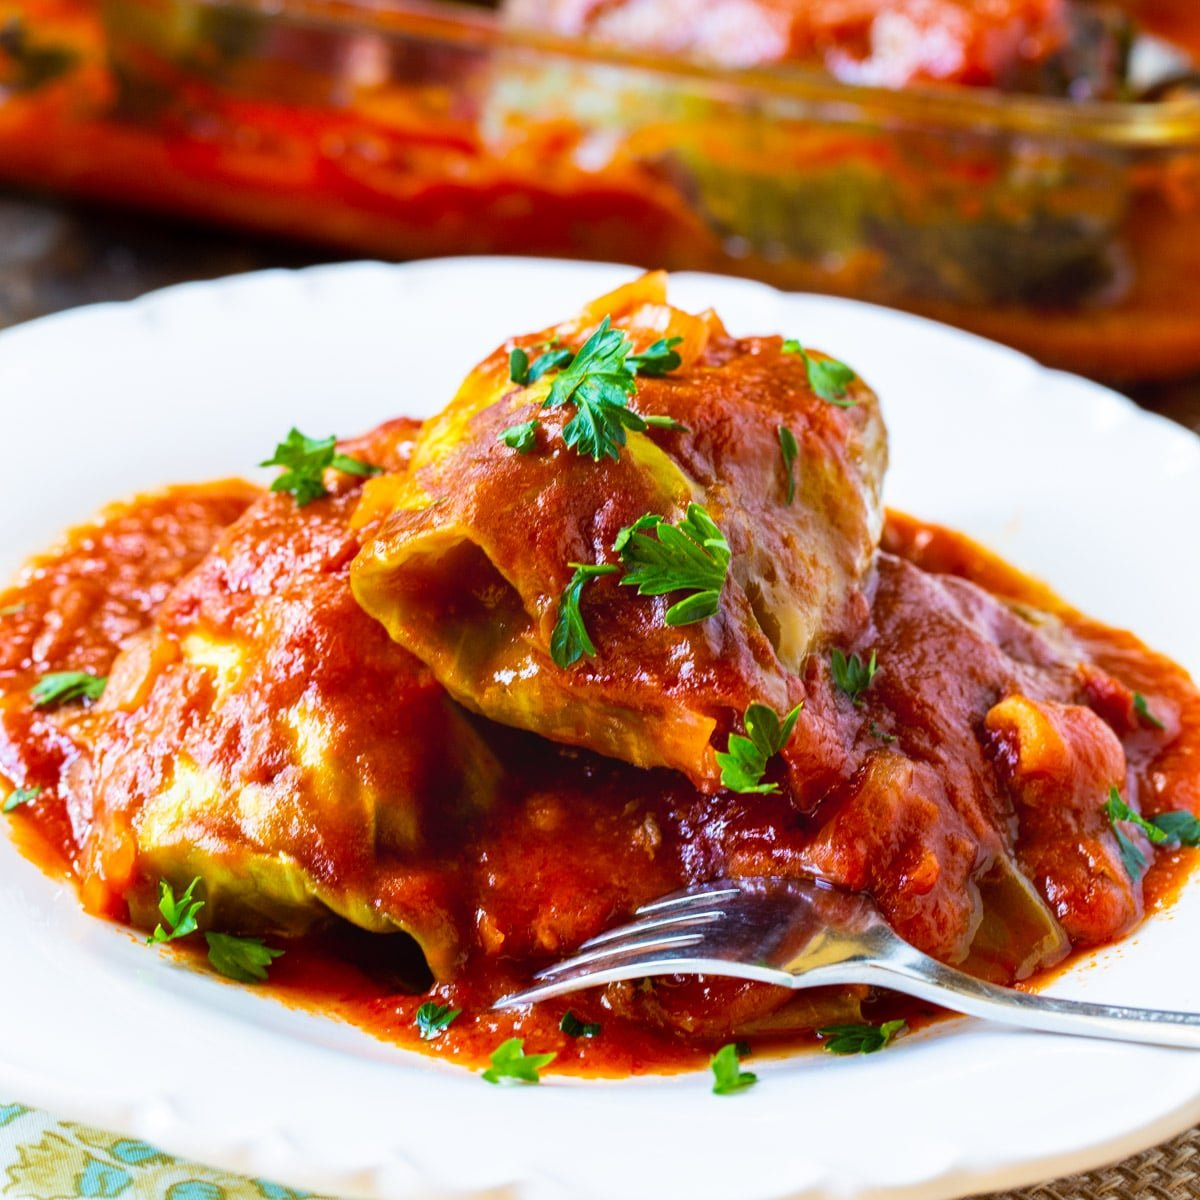 Three Stuffed Cabbage Rolls on a plate.